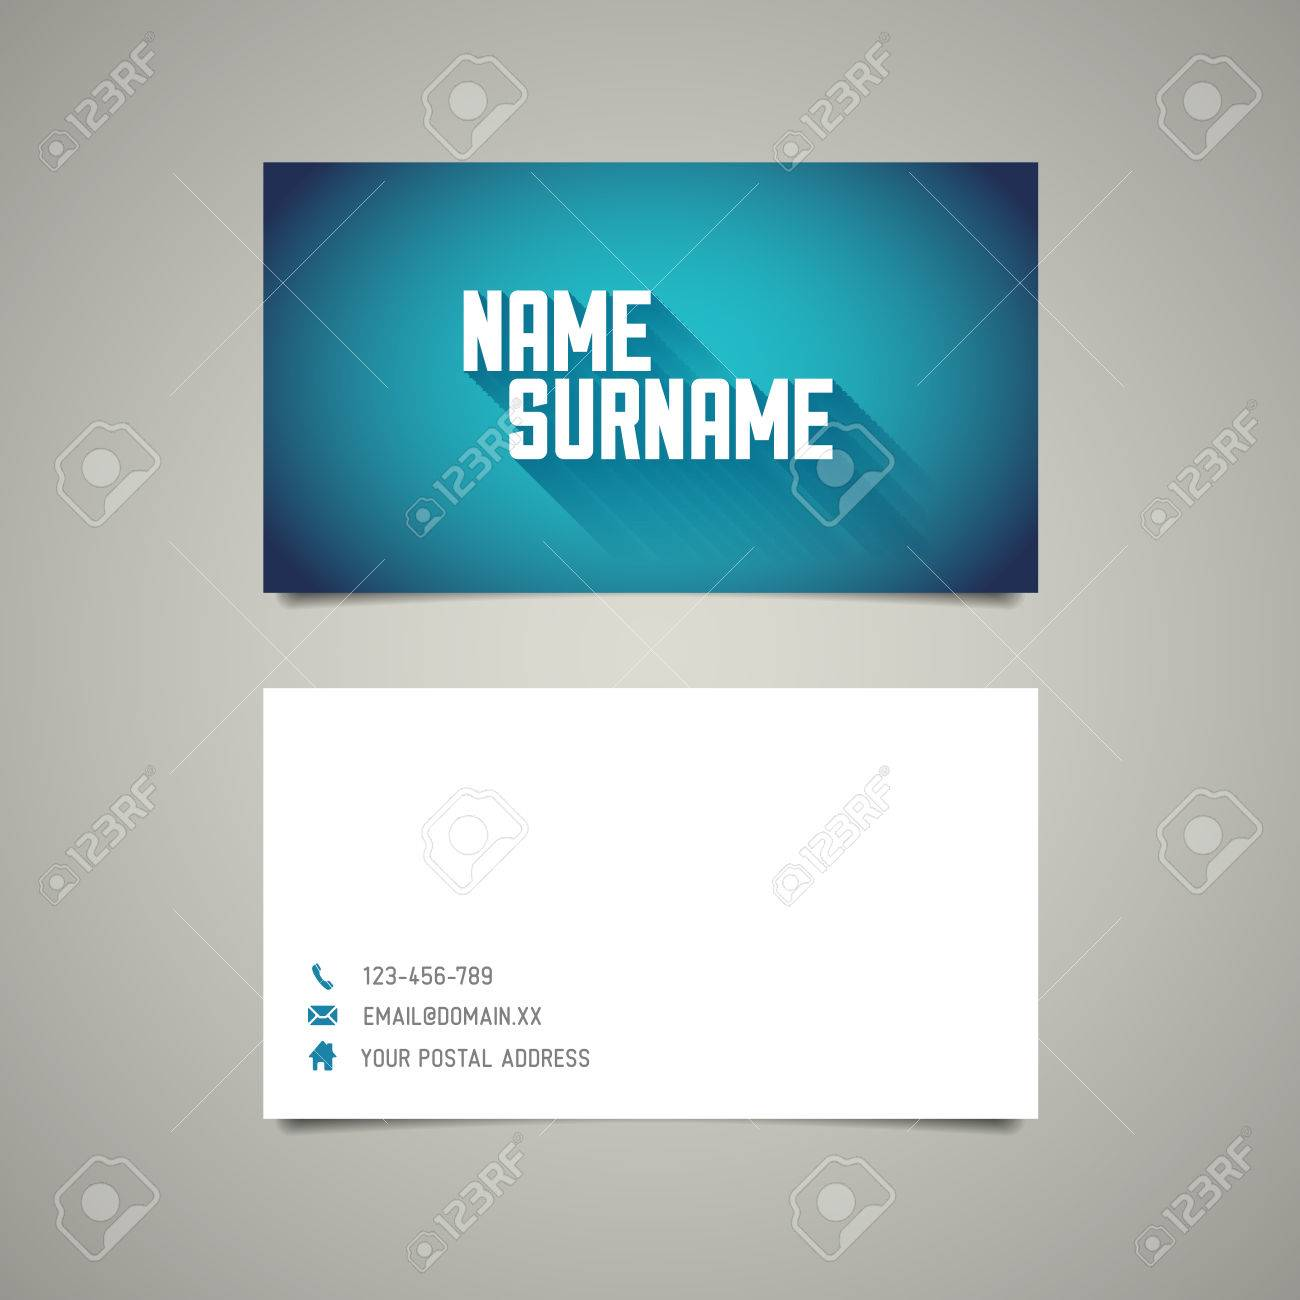 Paul allen business card template choice image free business cards msu business cards choice image free business cards simple business card images free business cards modern magicingreecefo Gallery